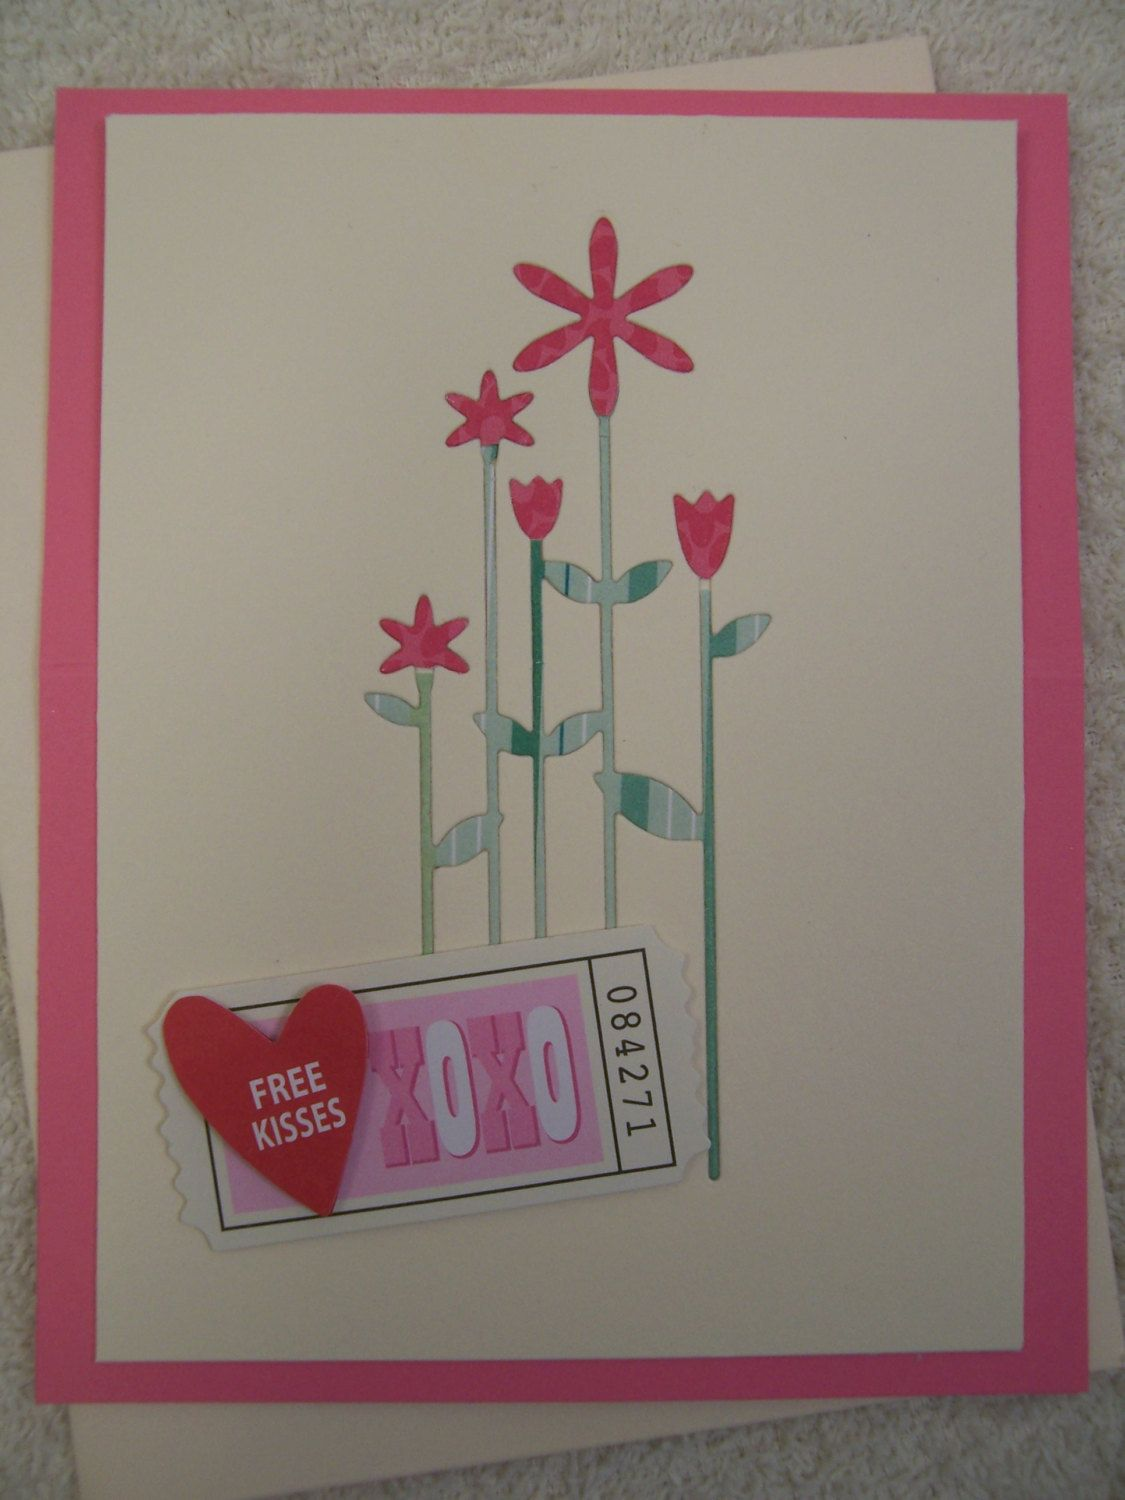 Hugs kisses stand up greeting card hug kiss and flat rate handcrafted floral hugs kisses greeting card by stampdujouramr on etsy m4hsunfo